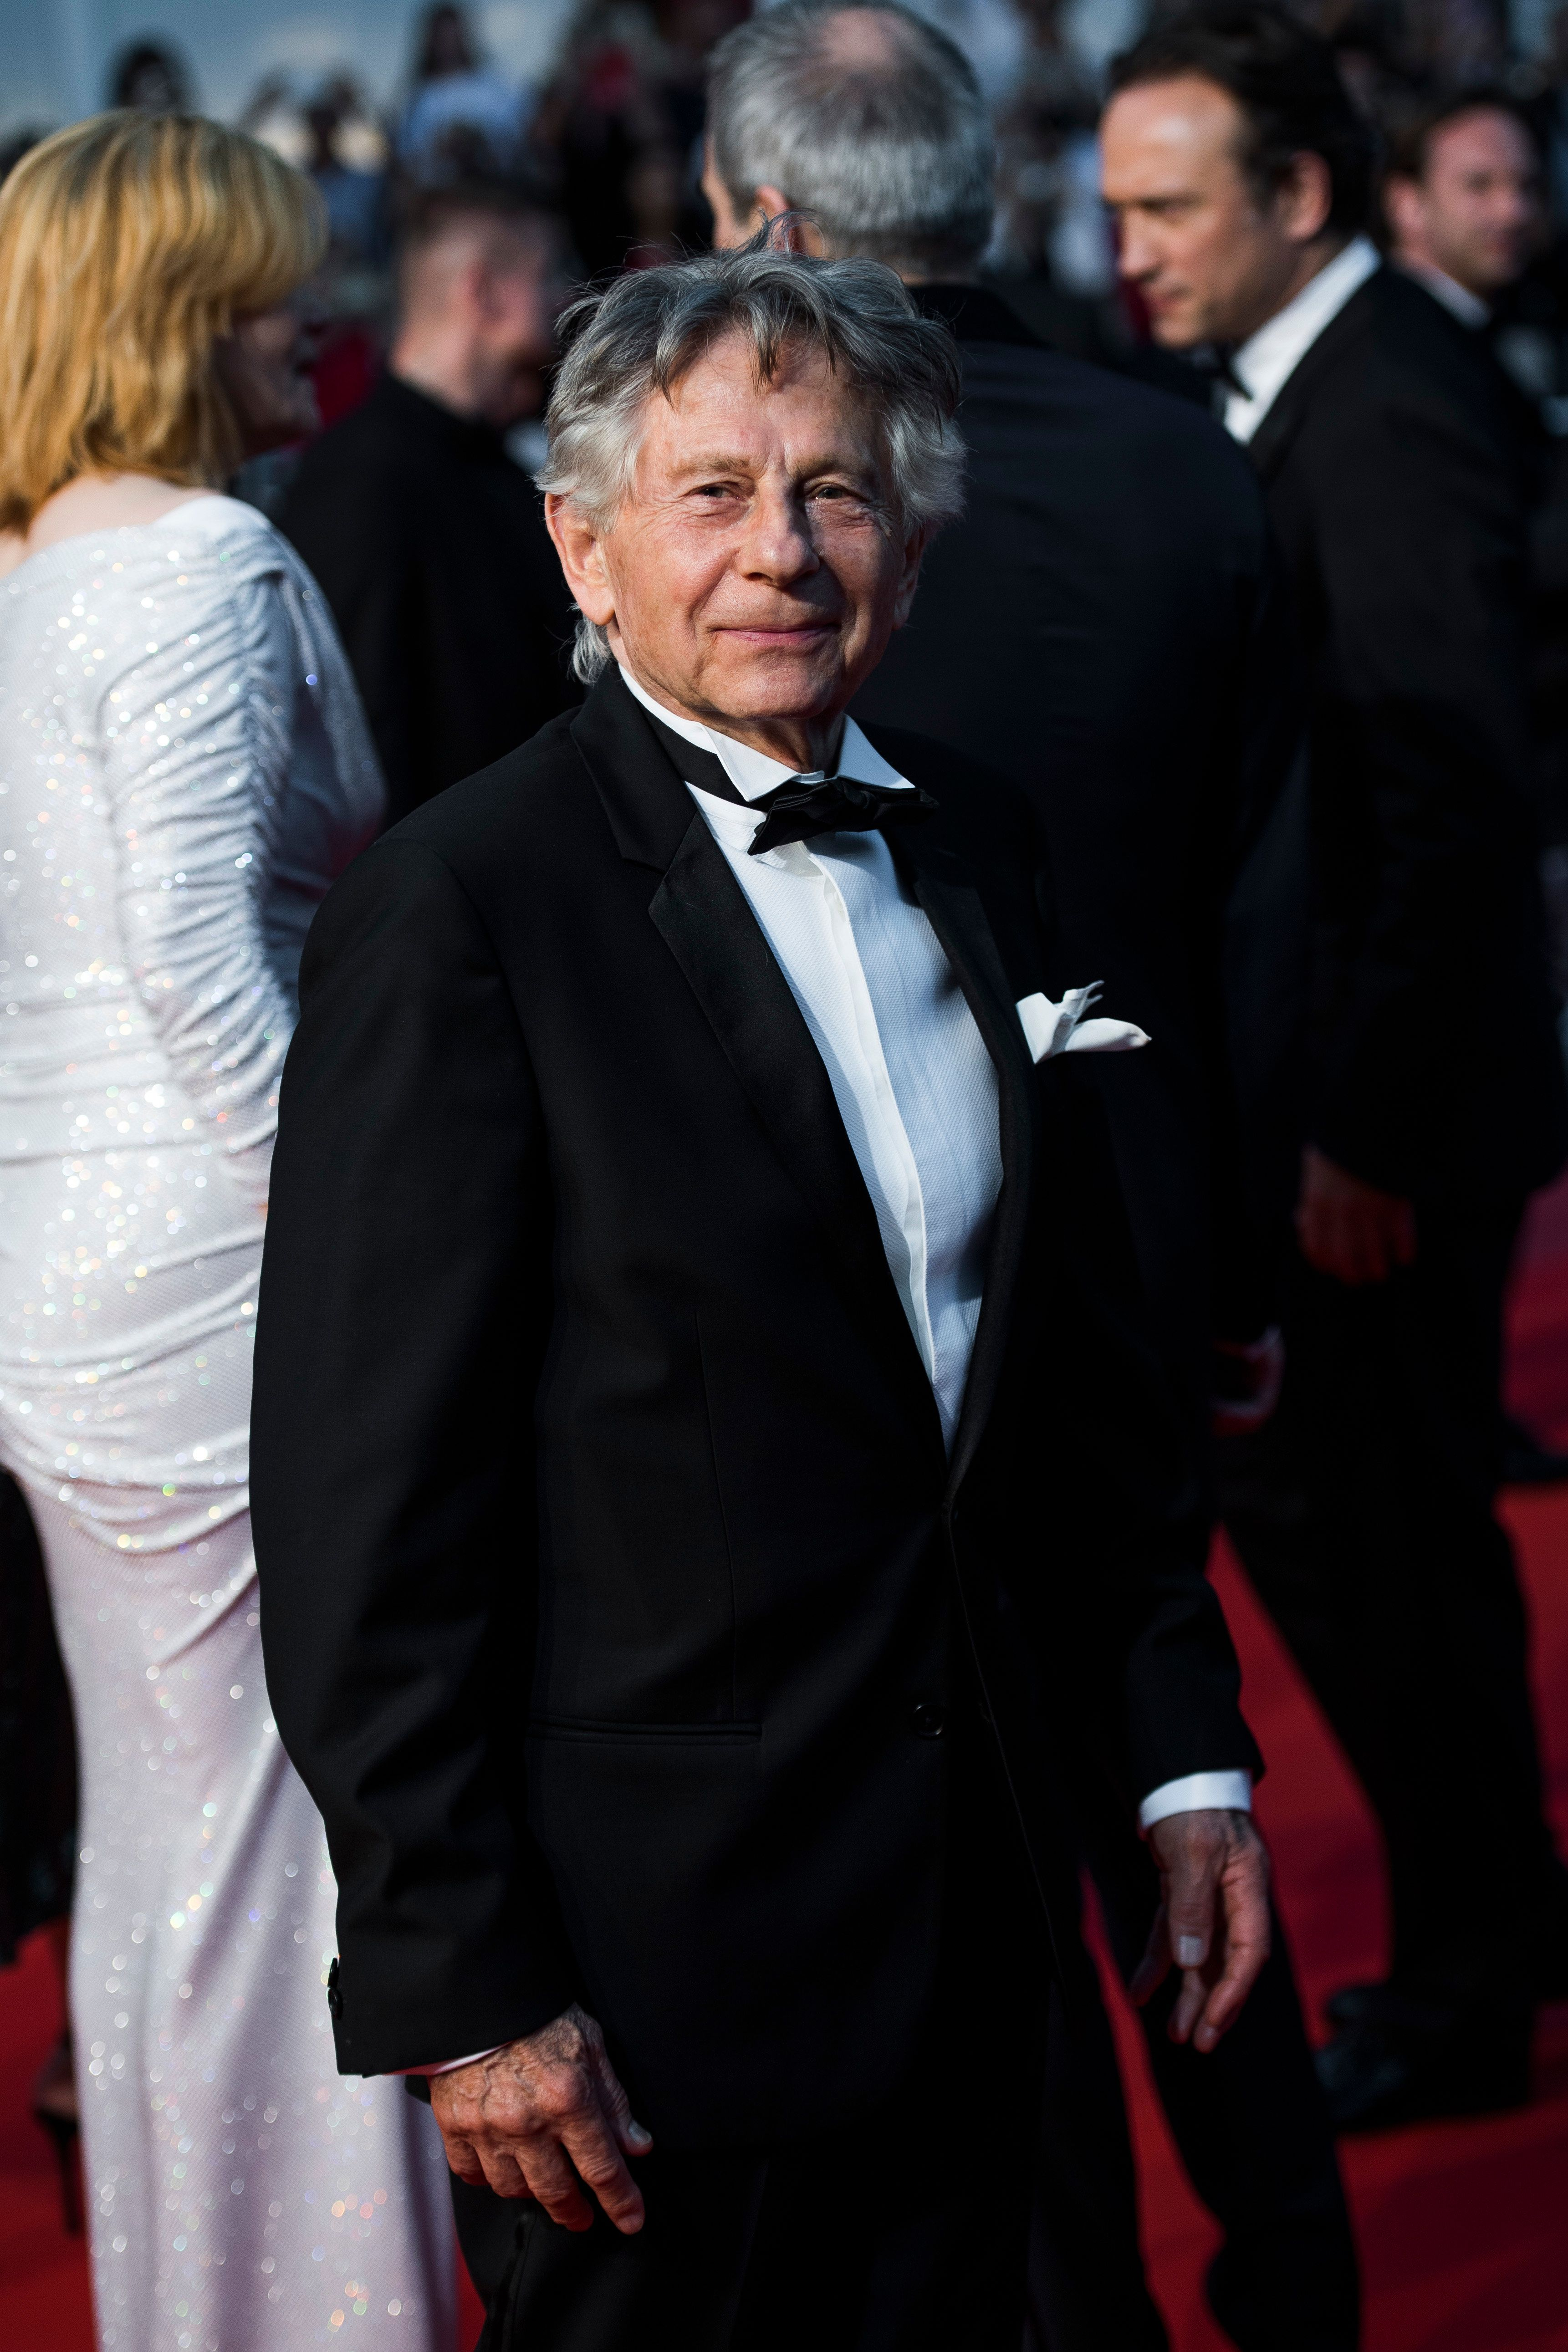 CANNES, FRANCE - MAY 27:  Roman Polanski attends the 'Based On A True Story' screening during the 70th annual Cannes Film Festival at Palais des Festivals on May 27, 2017 in Cannes, France.  (Photo by Matthias Nareyek/Getty Images)